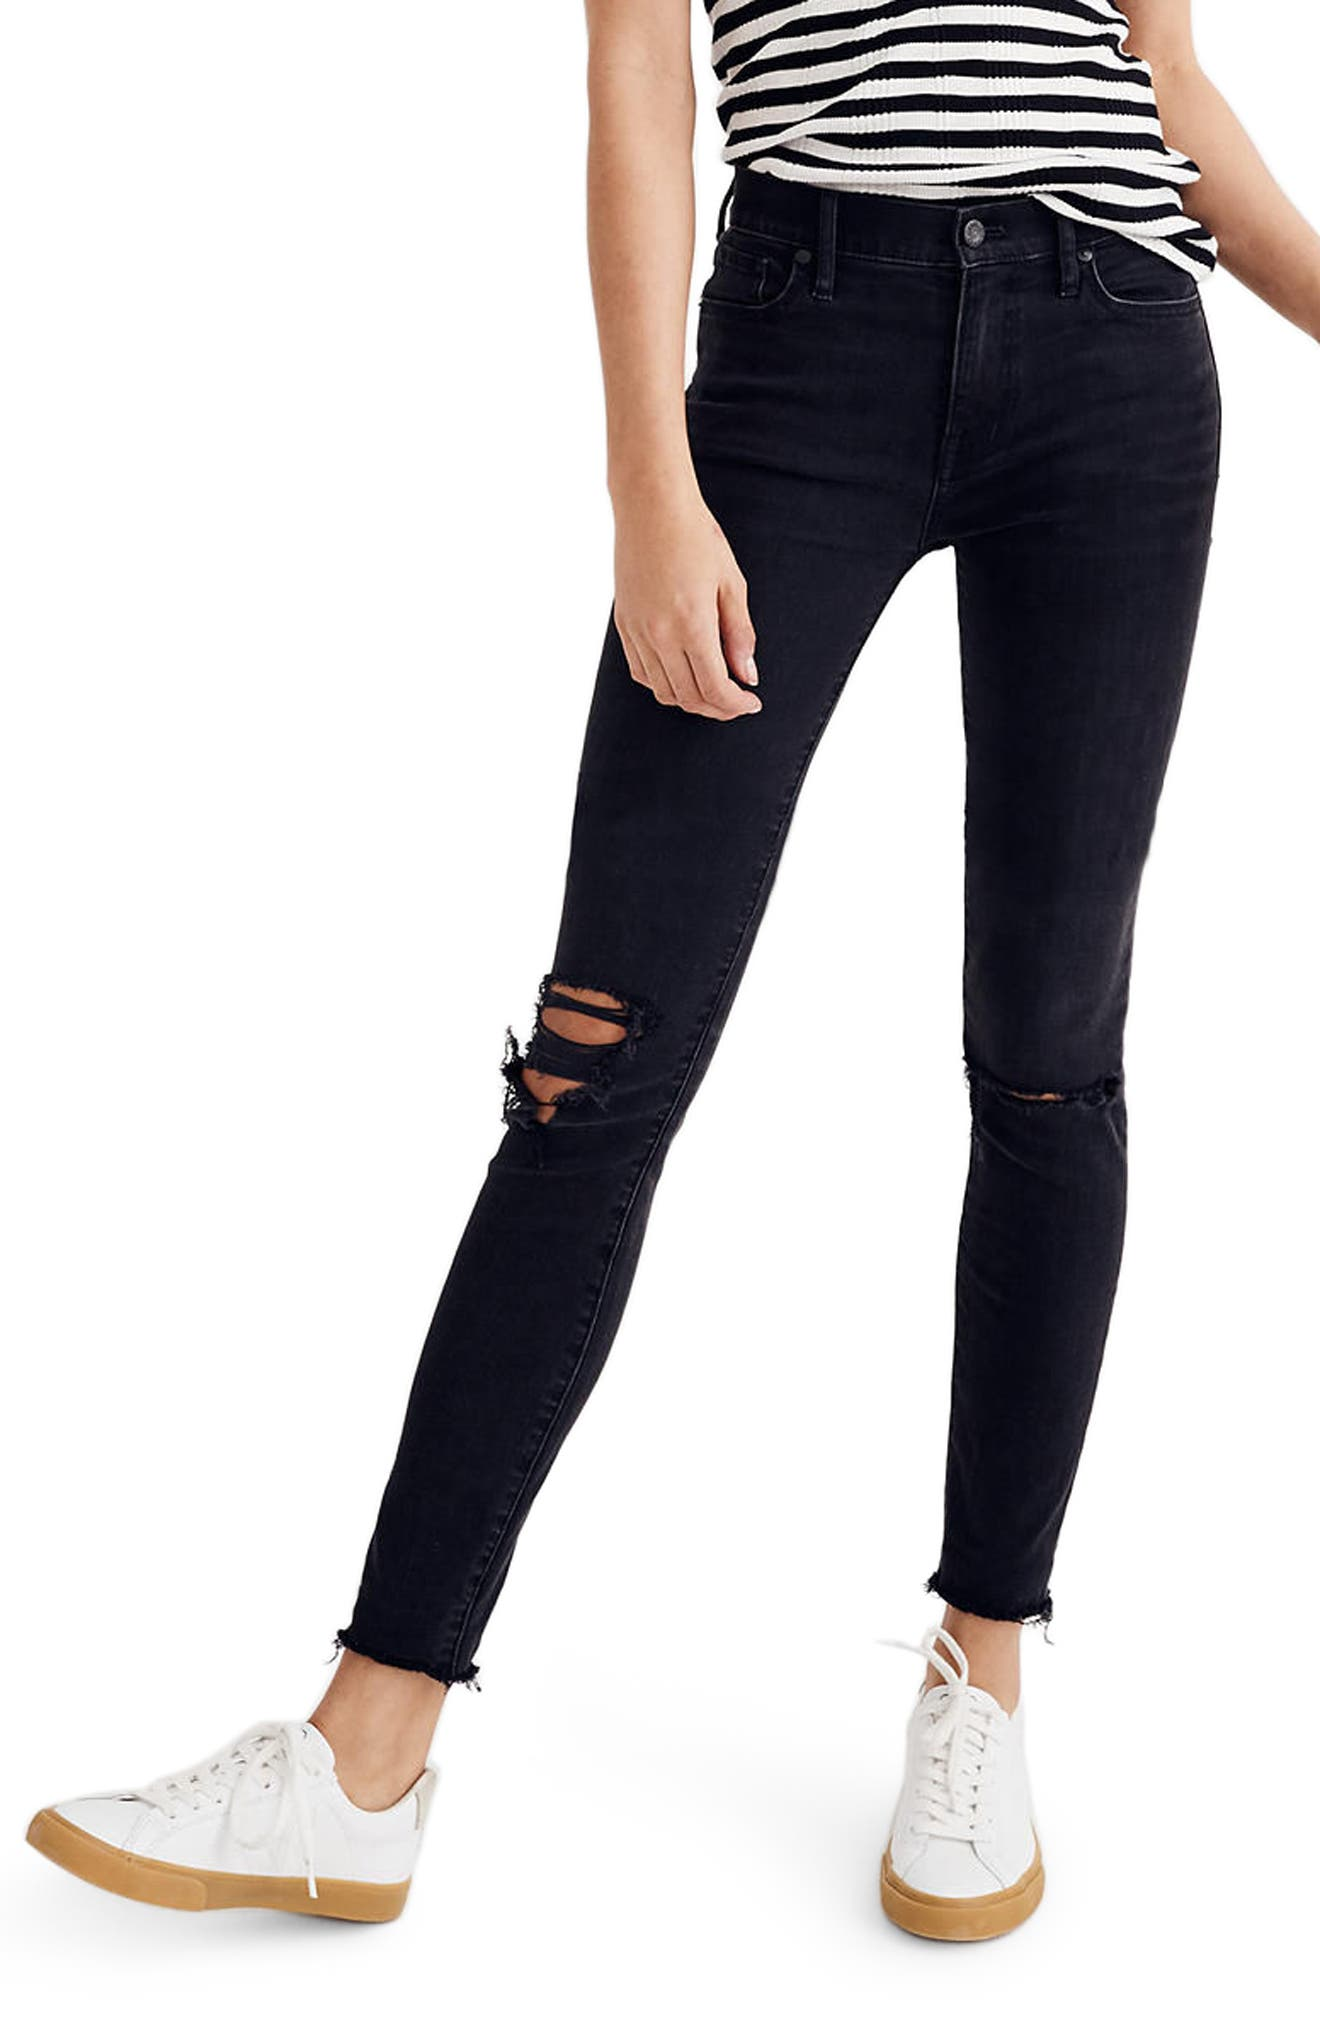 9-Inch High Waist Skinny Jeans,                             Main thumbnail 1, color,                             009